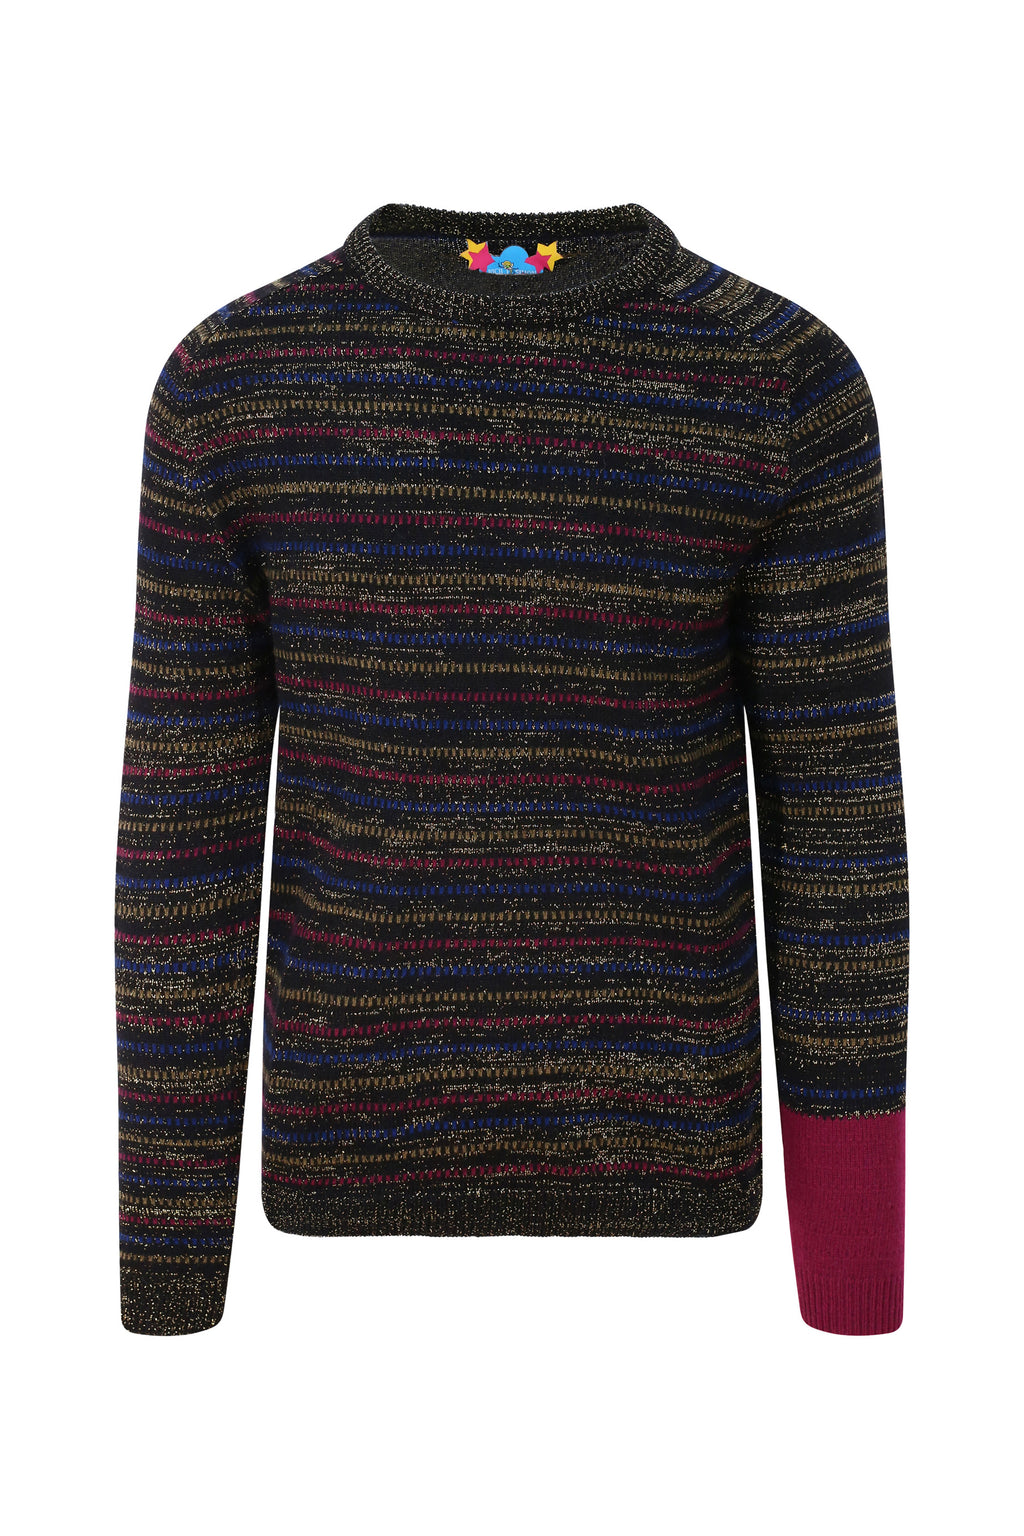 Unisex Striped Cashmere Jumper